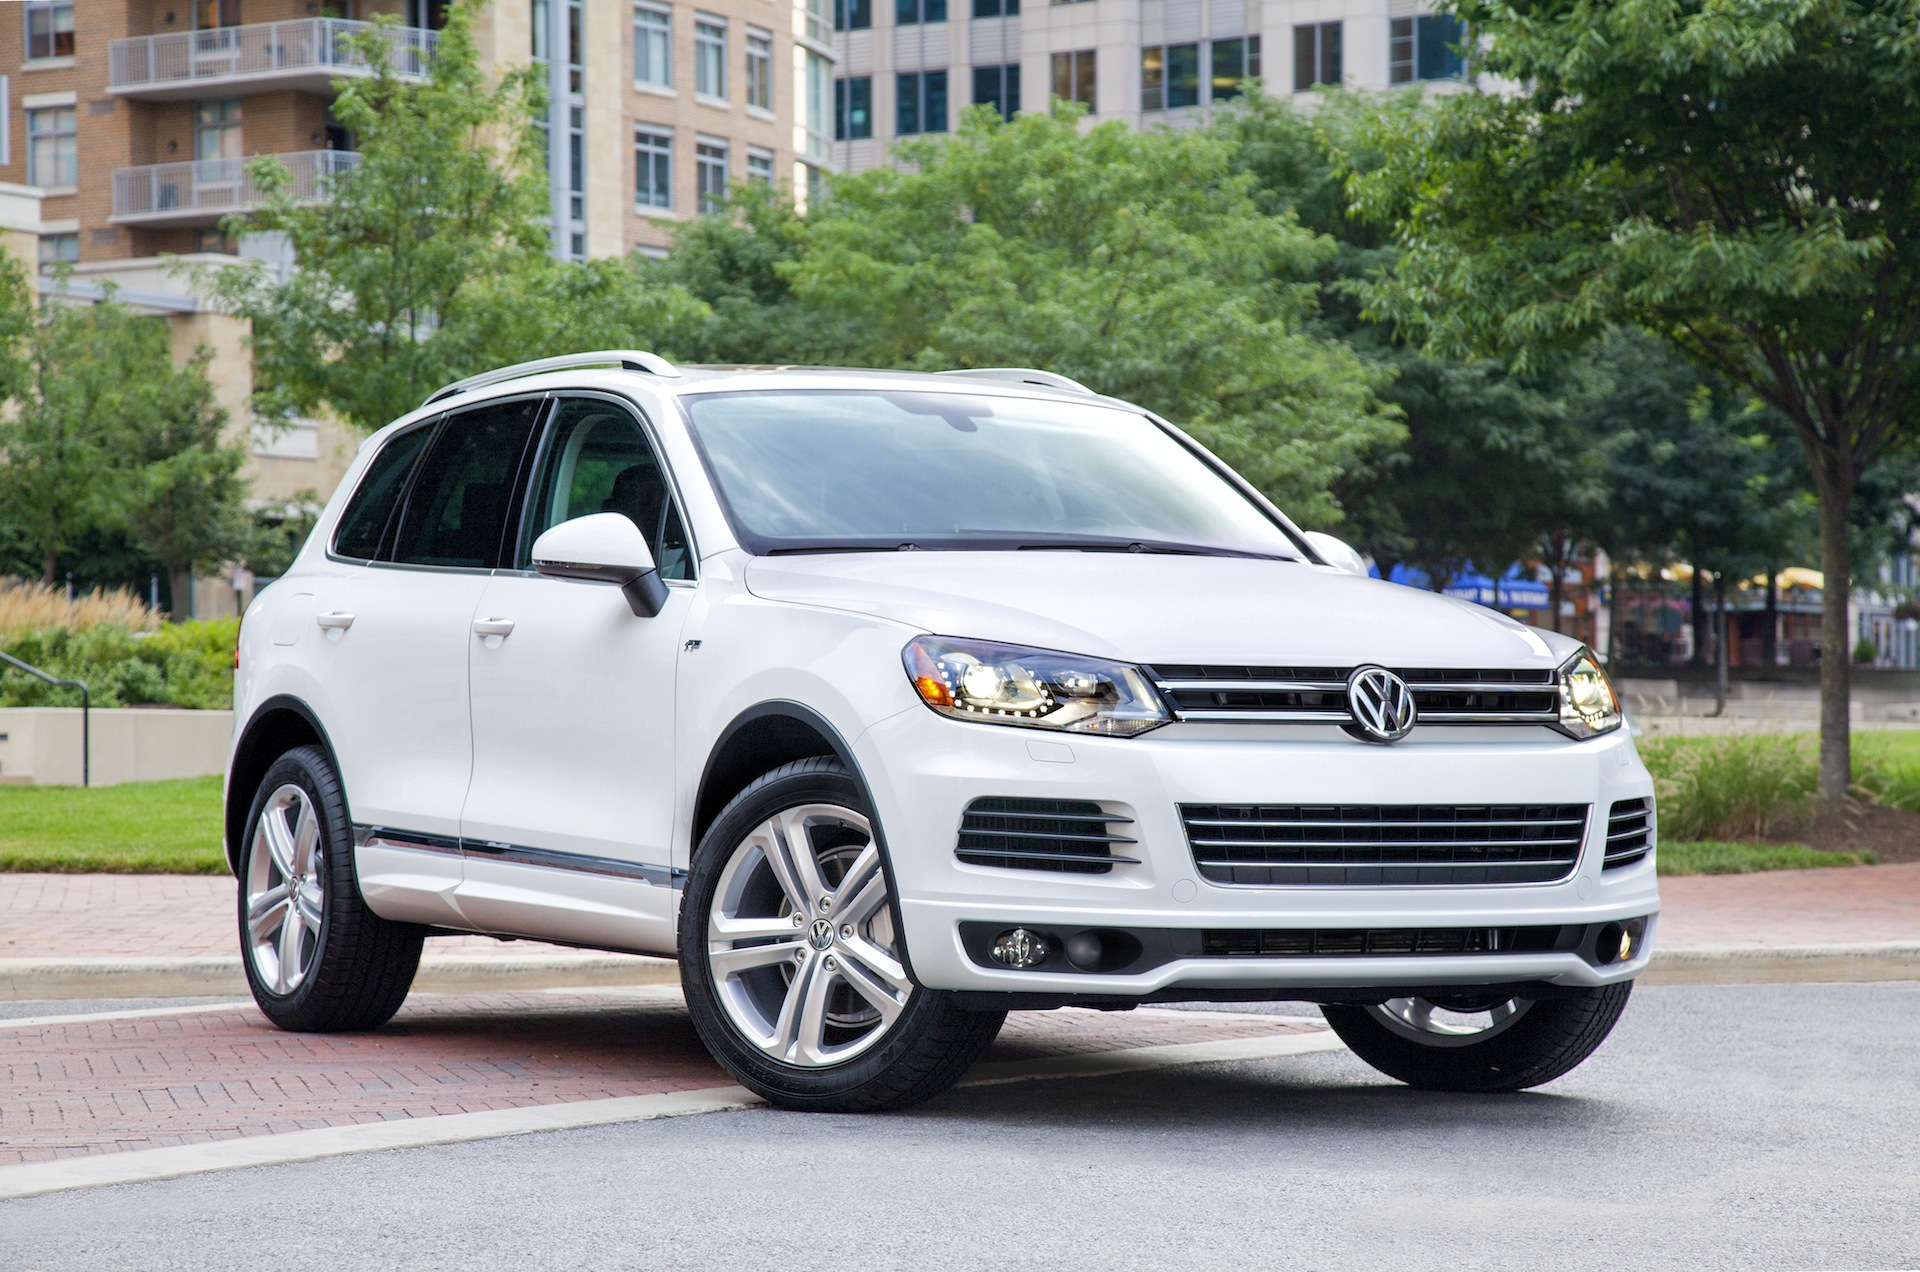 2014 Volkswagen Touareg Vw Review Ratings Specs